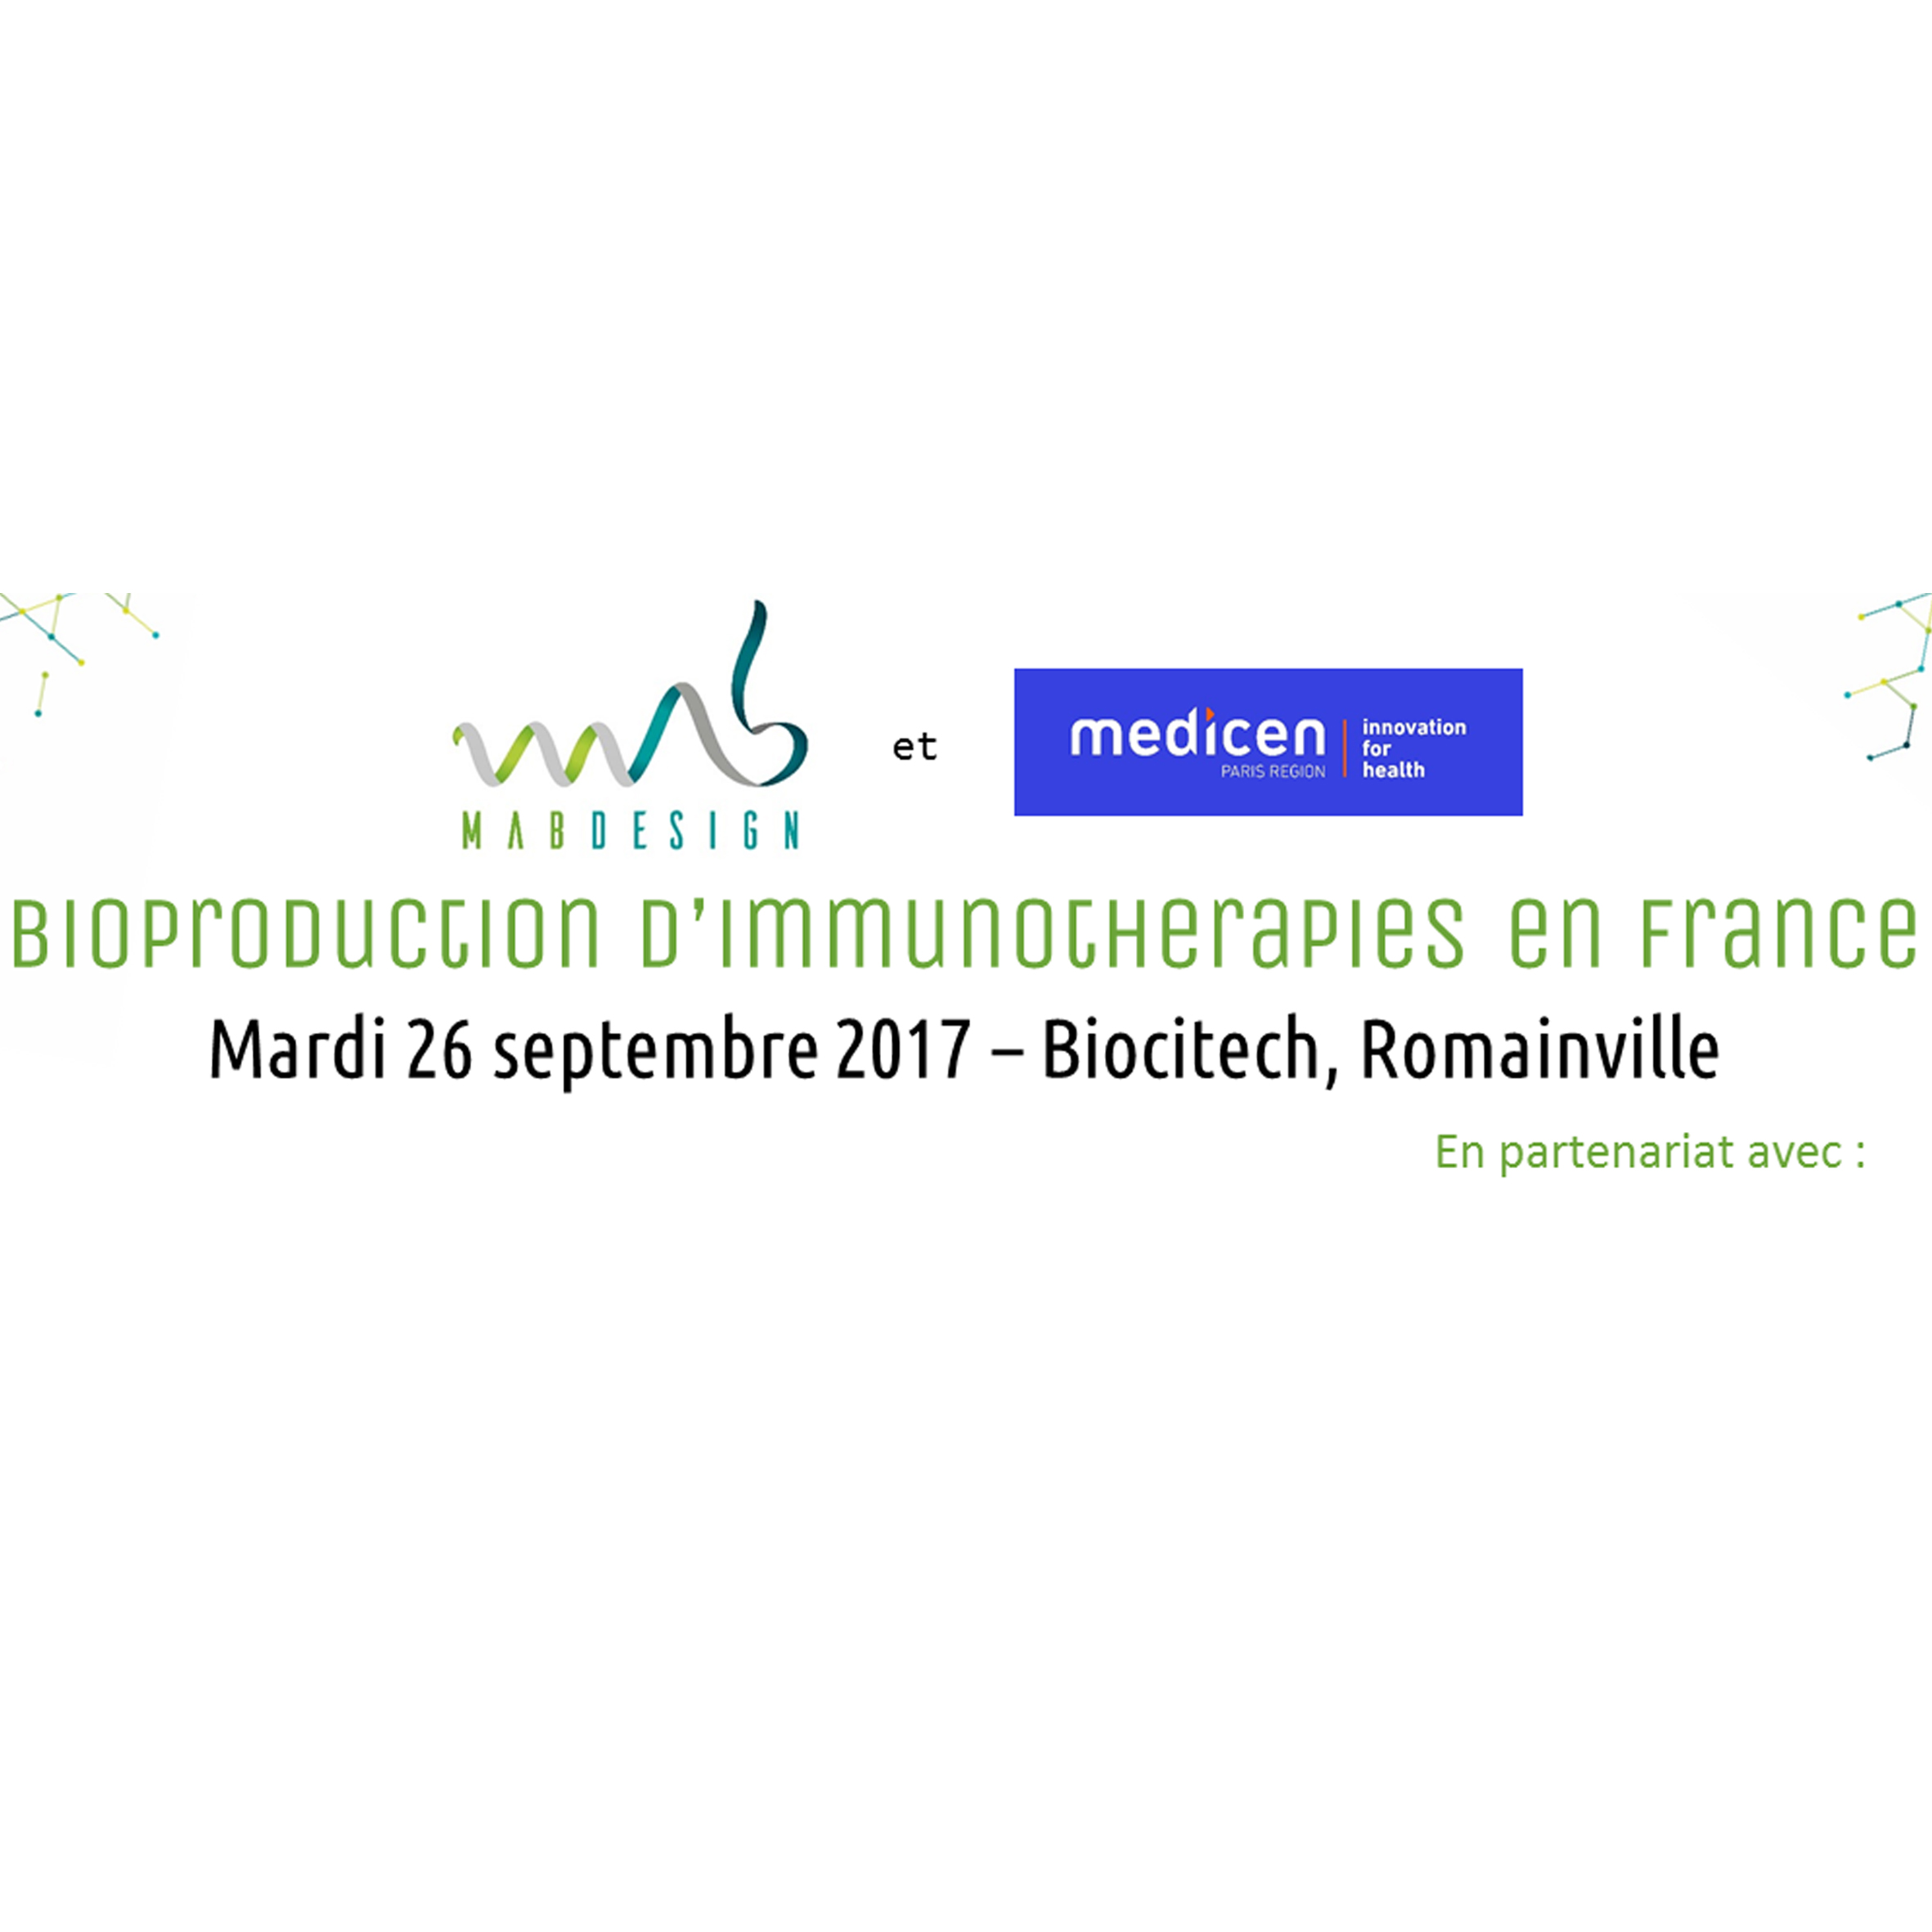 Bioproduction d'immunothérapies en France